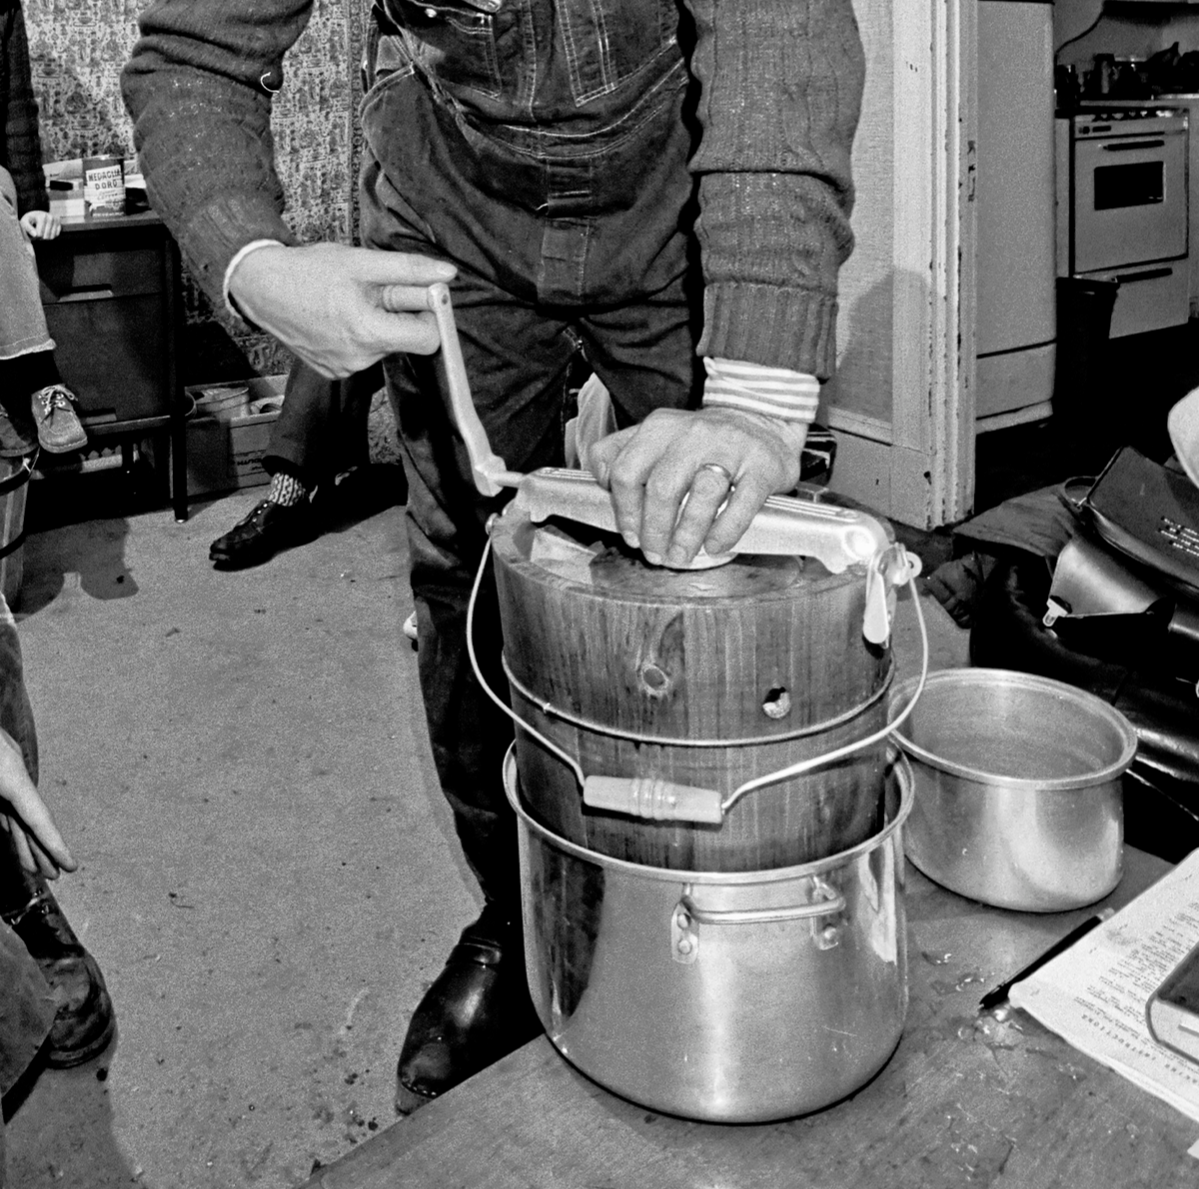 Tufts Roots and Growth House program director professor Jesper Rosenmeier uses an old-fashioned hand crank freezer to make 'academic ice cream,' Medford, Massachusetts, 1973.